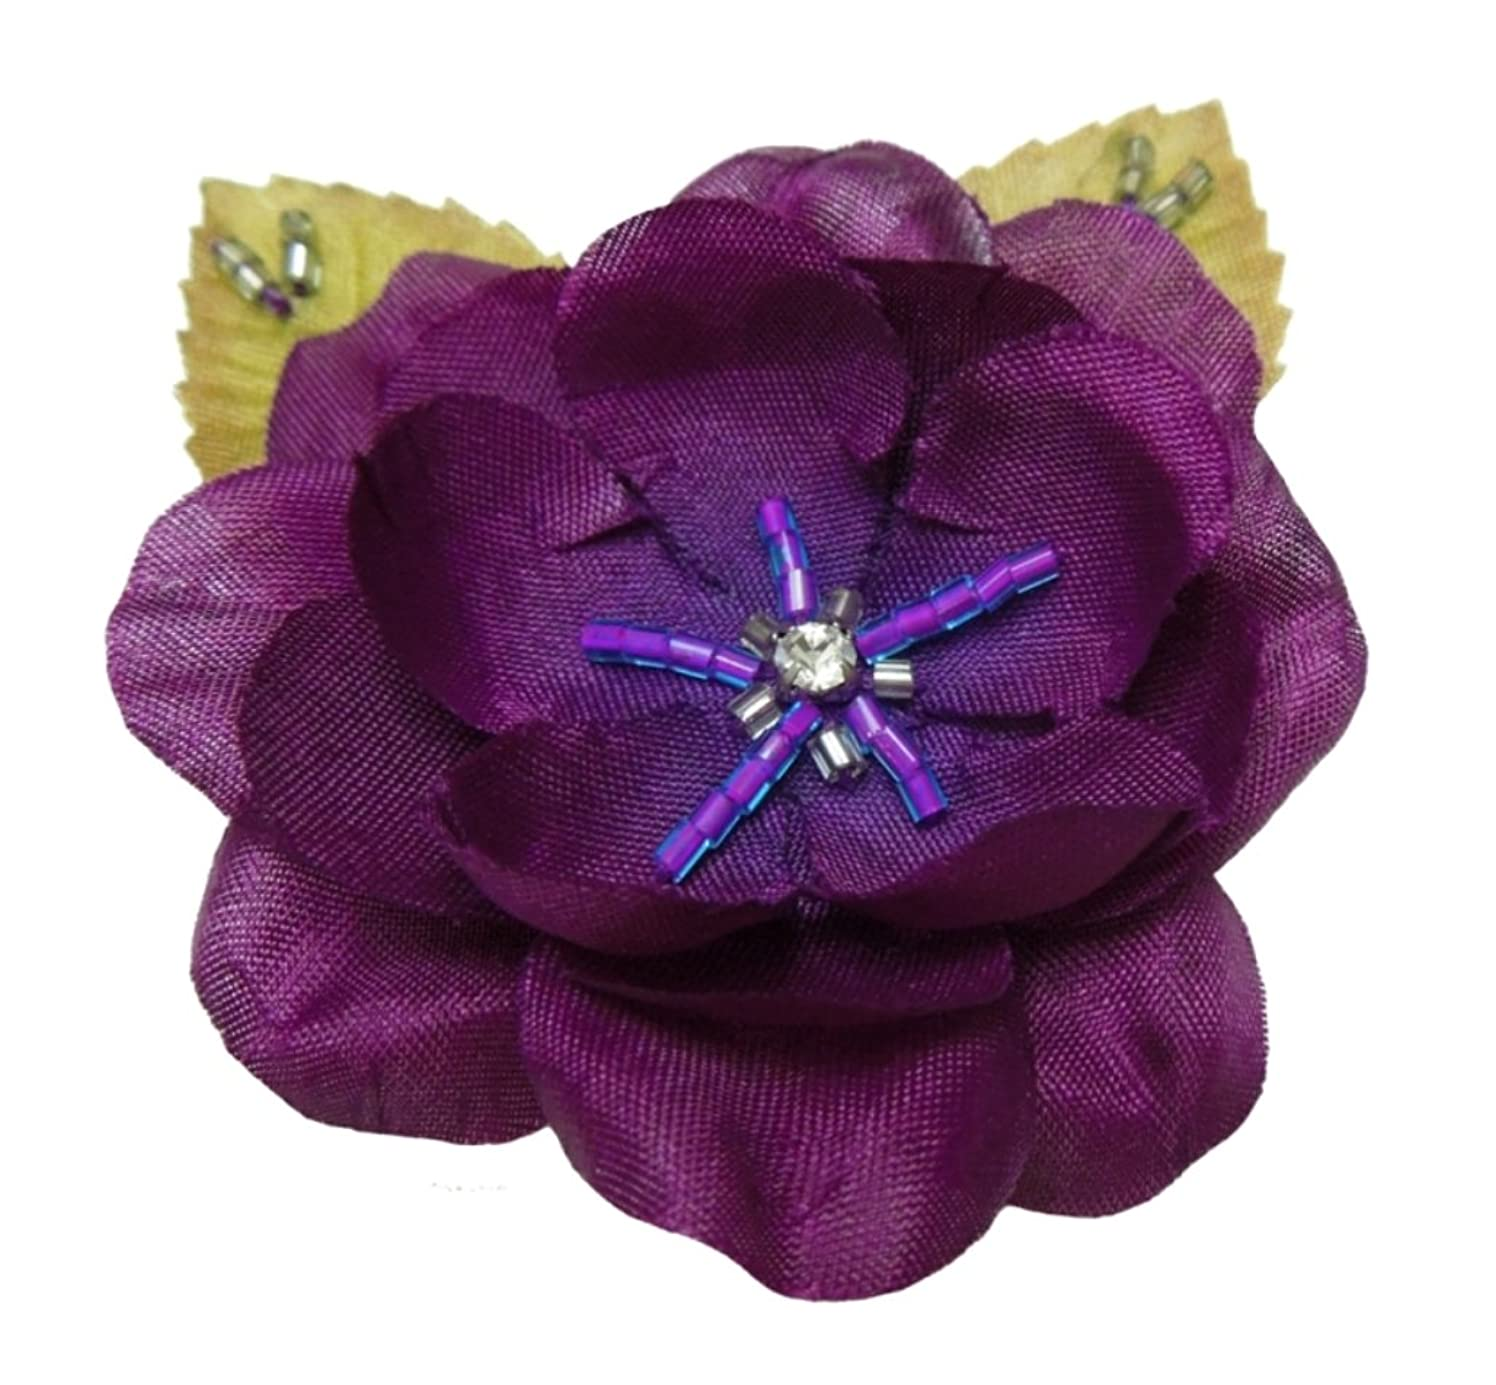 Cuteque International 6-Piece Pack Rhinestone Embellished Colorful Garden Roses with Leaves, Eggplant